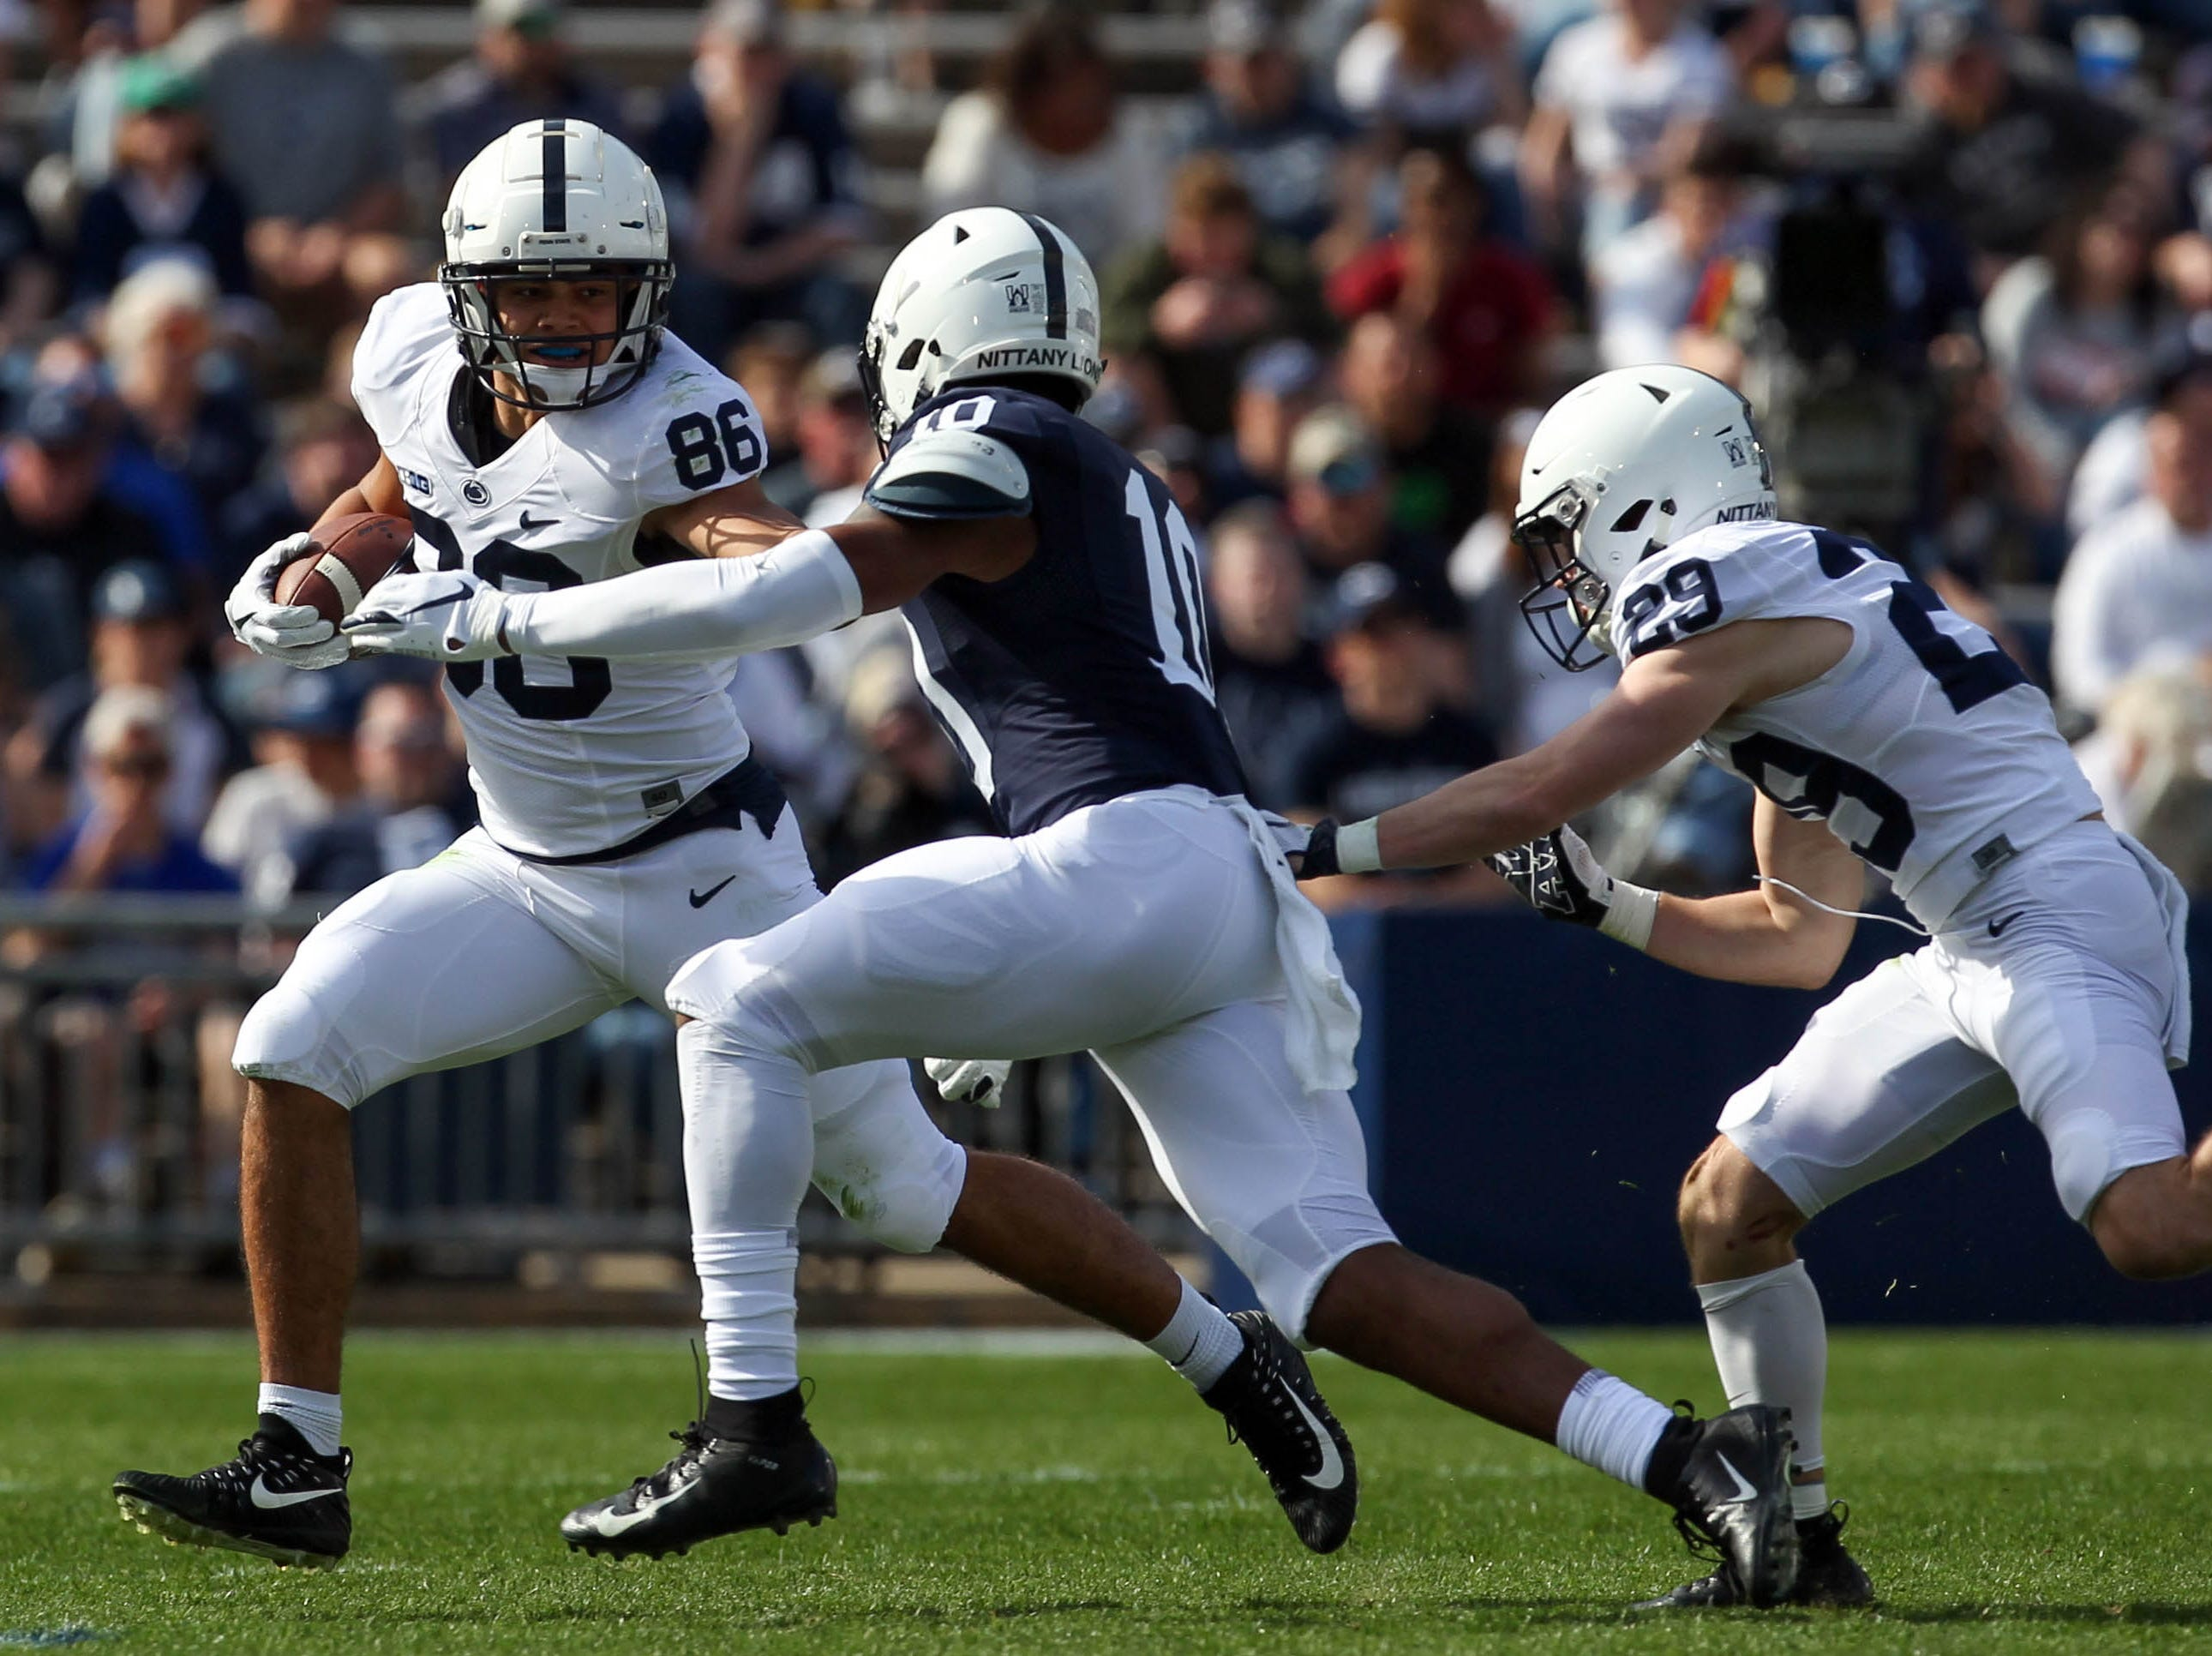 Apr 13, 2019; University Park, PA, USA; Penn State Nittany Lions tight end Brenton Strange (86) runs with the ball during the third quarter of the Blue White spring game at Beaver Stadium. The Blue team defeated the White team 24-7. Mandatory Credit: Matthew O'Haren-USA TODAY Sports